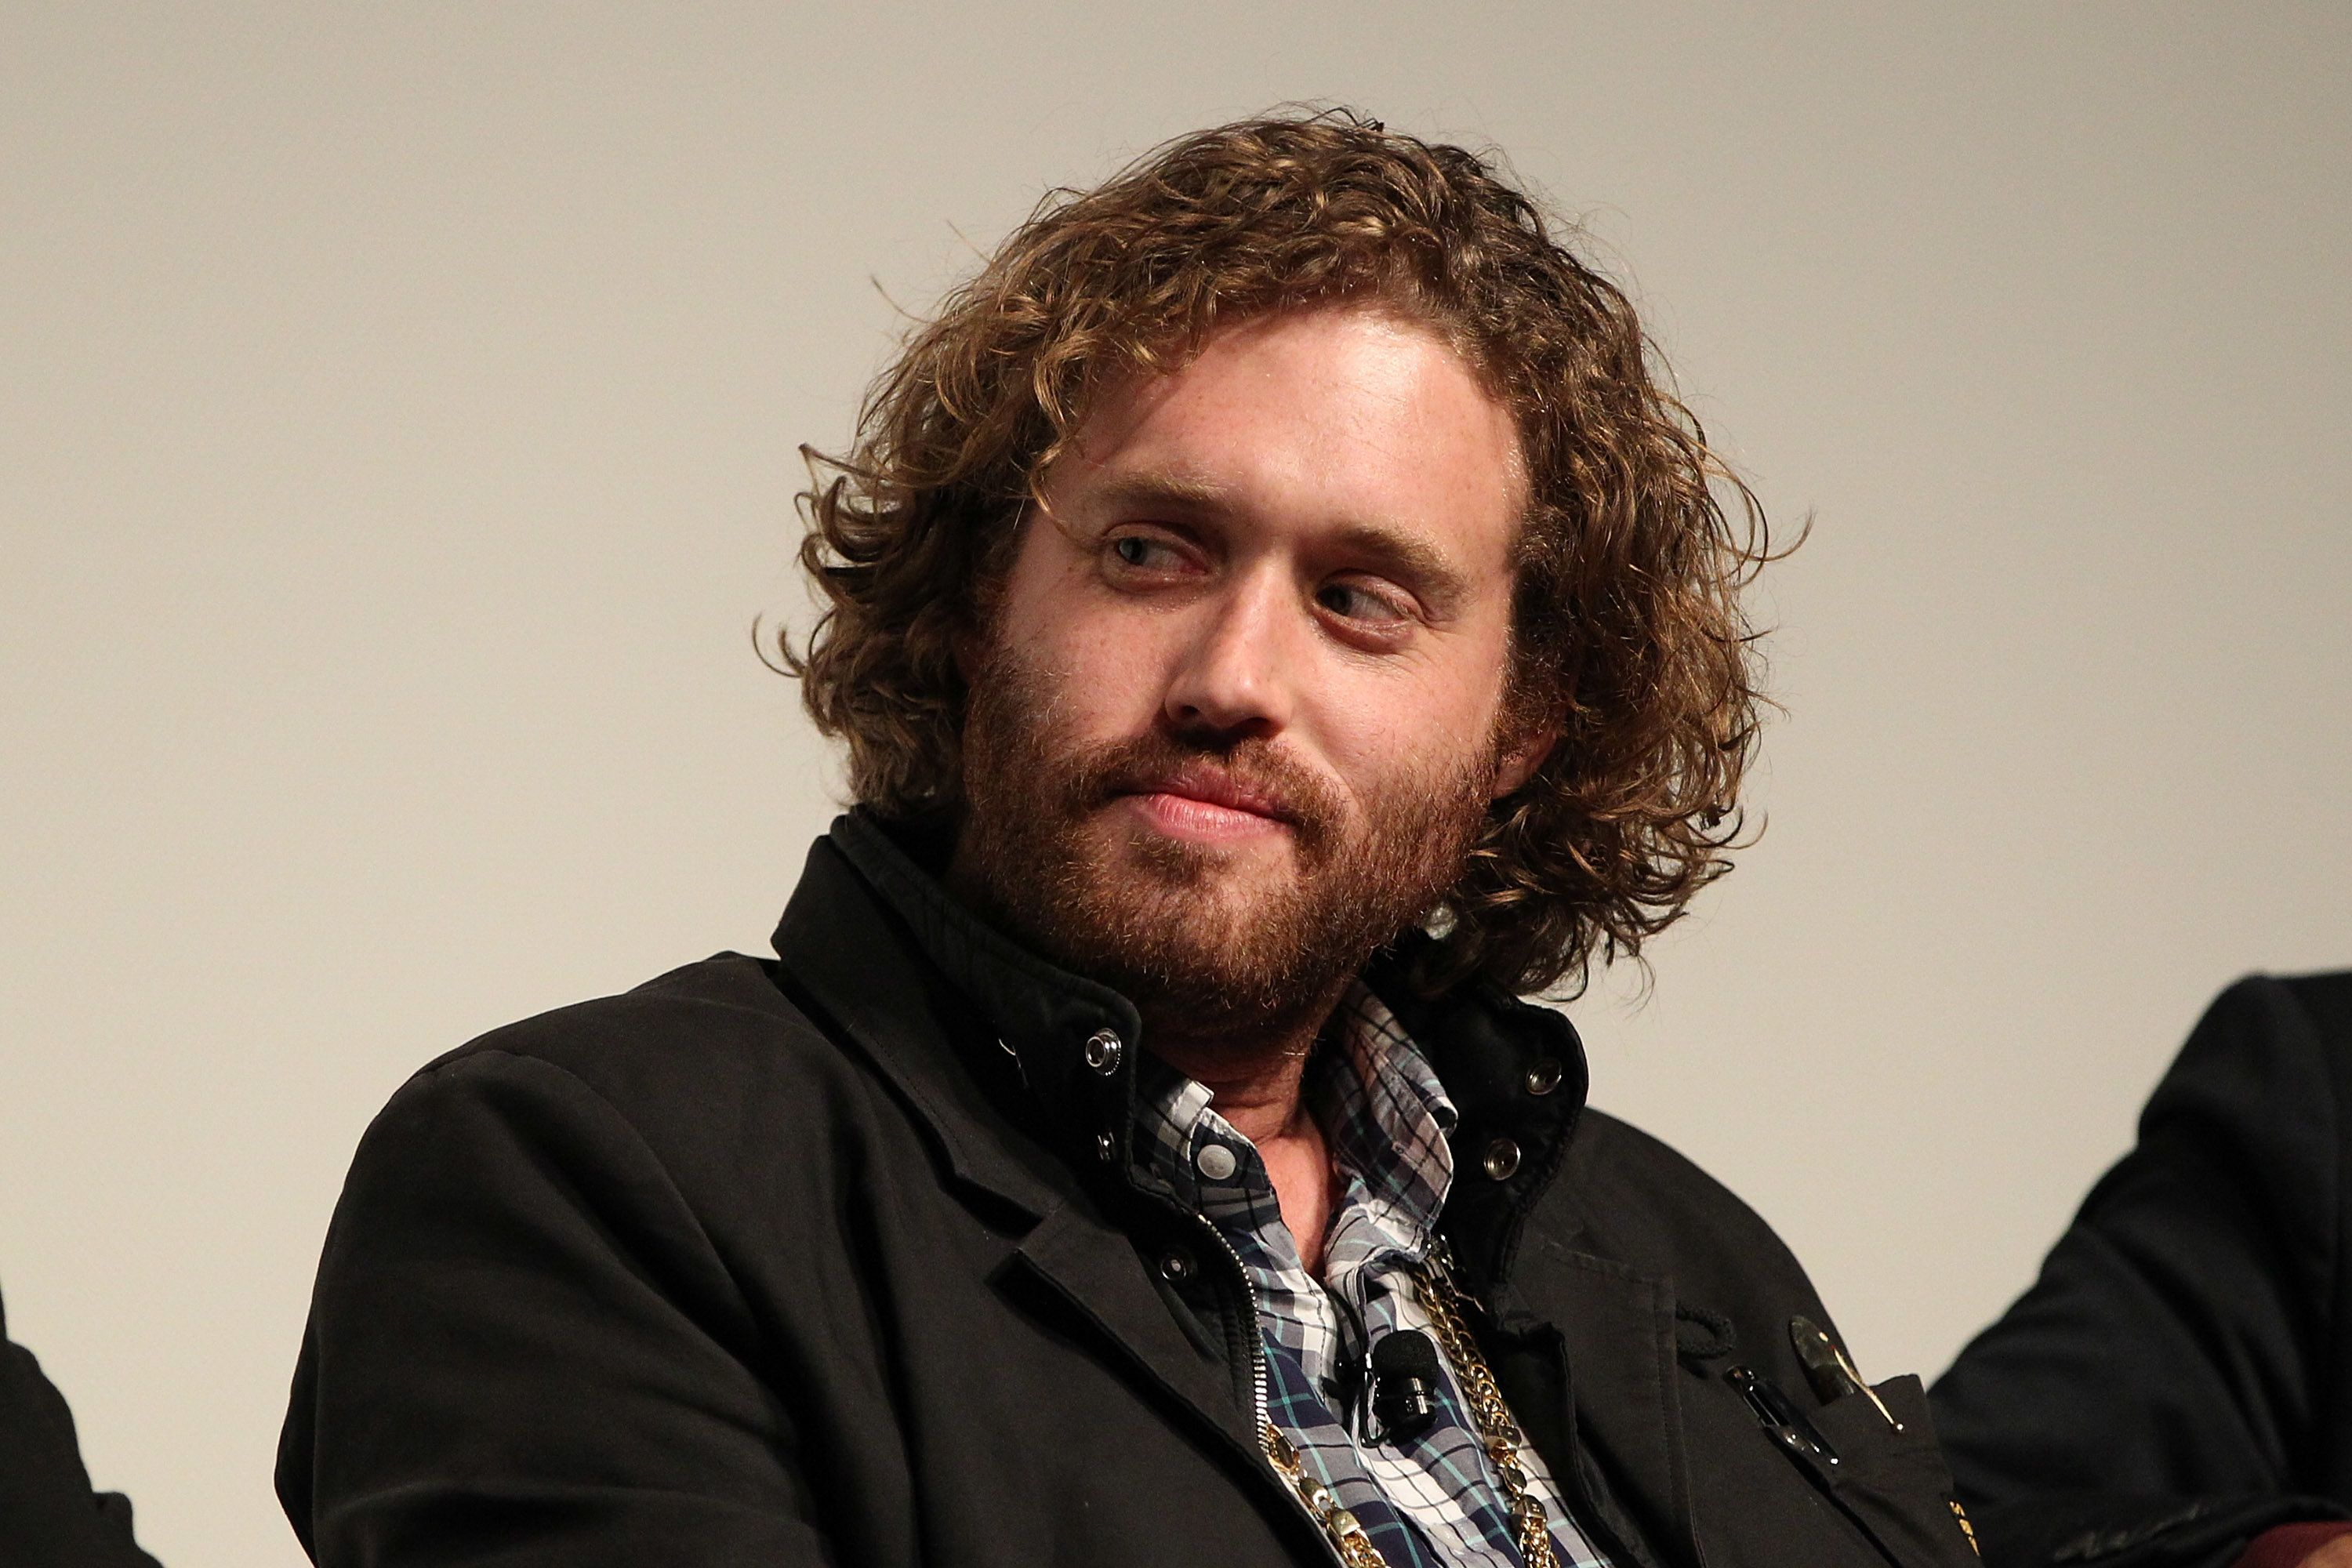 LOS ANGELES, CA - MAY 03:  T. J. Miller attends the 'Silicon Valley' screening and panel at the Writer's Guild at Writer's Guild Theater on May 3, 2015 in Los Angeles, California.  (Photo by FilmMagic/FilmMagic)